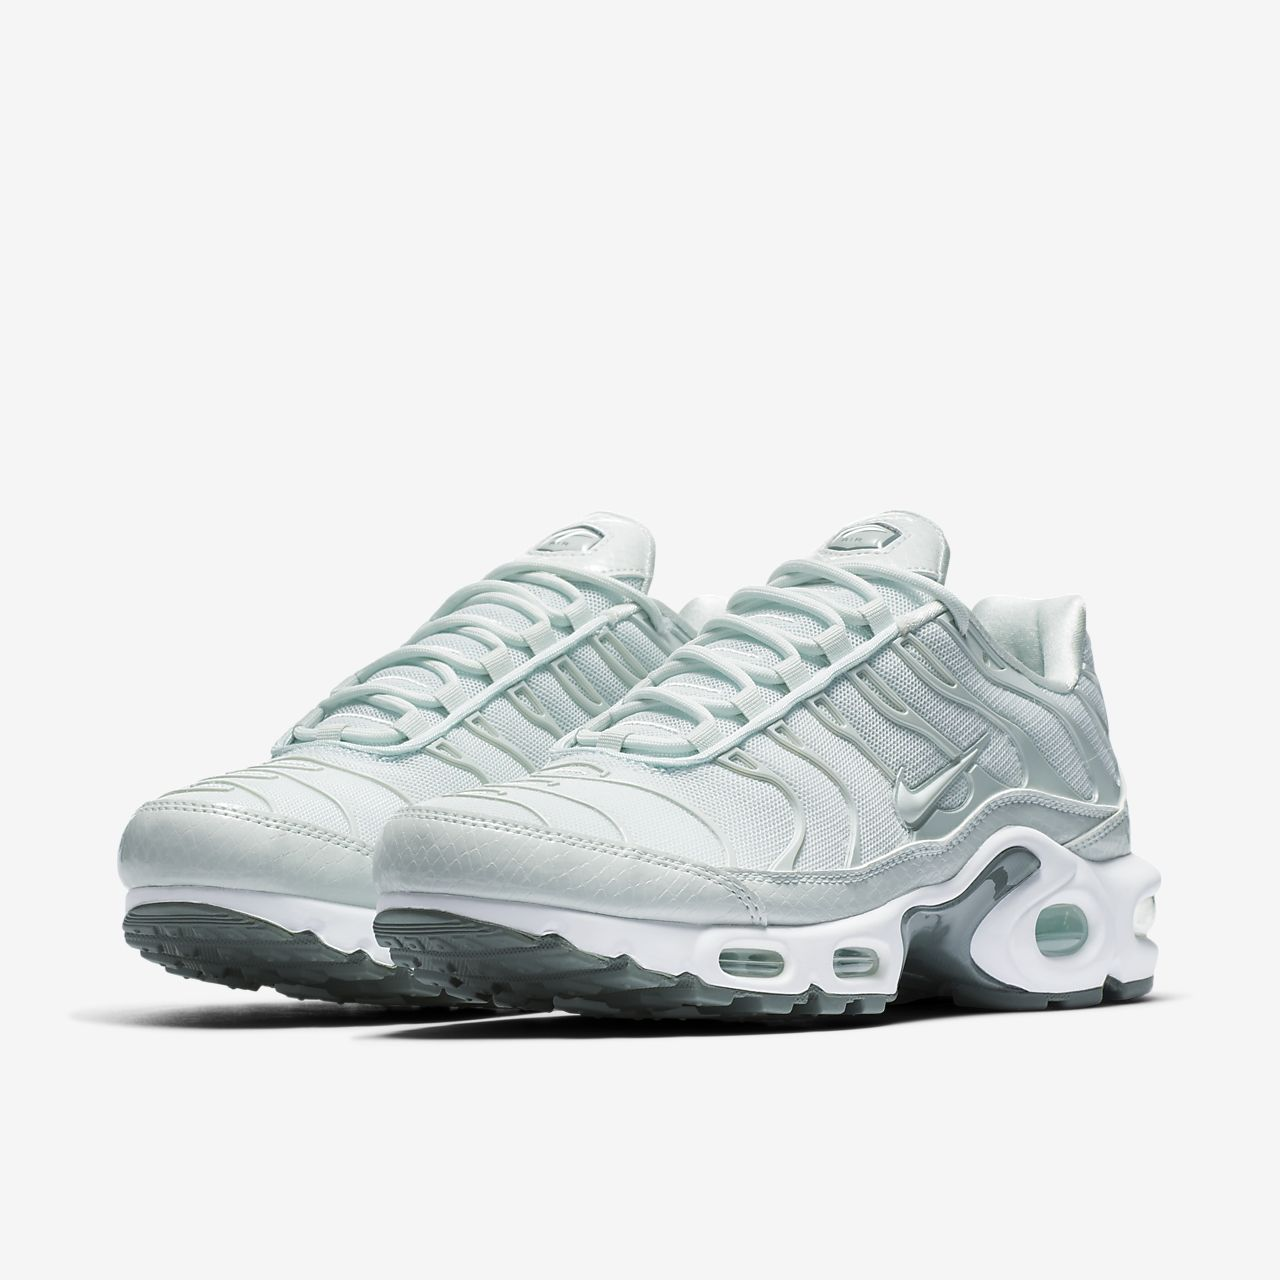 Nike Wmns Air Max Plus SE Barely Grey/ Barely Grey IRGqEY